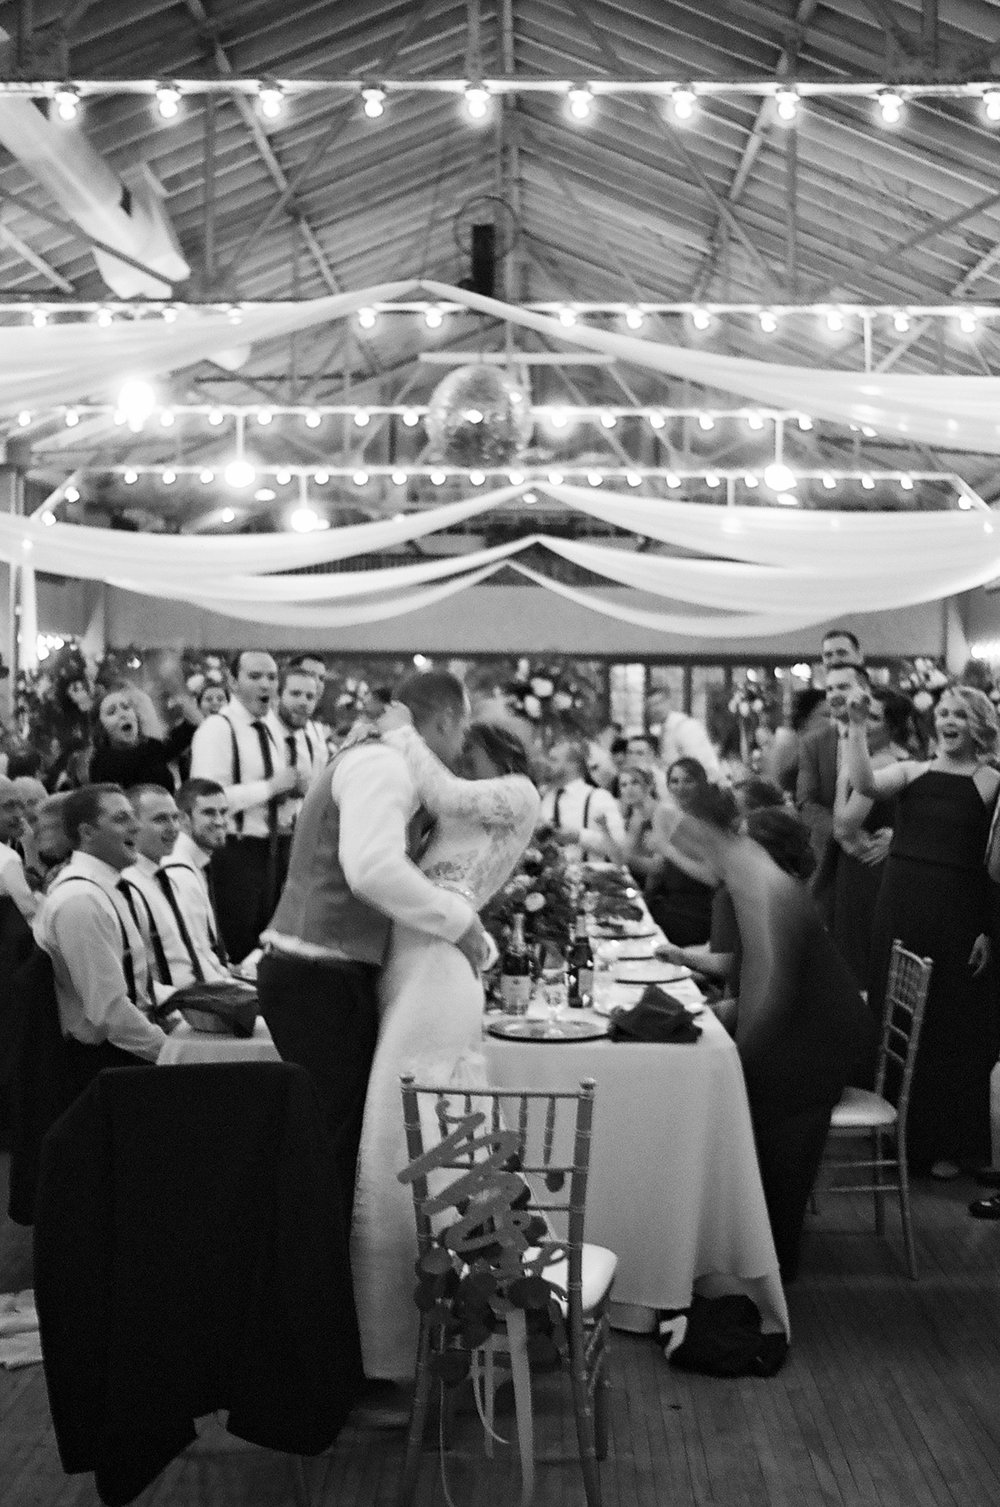 black and white film moment at Rothschild Pavilion winter wedding